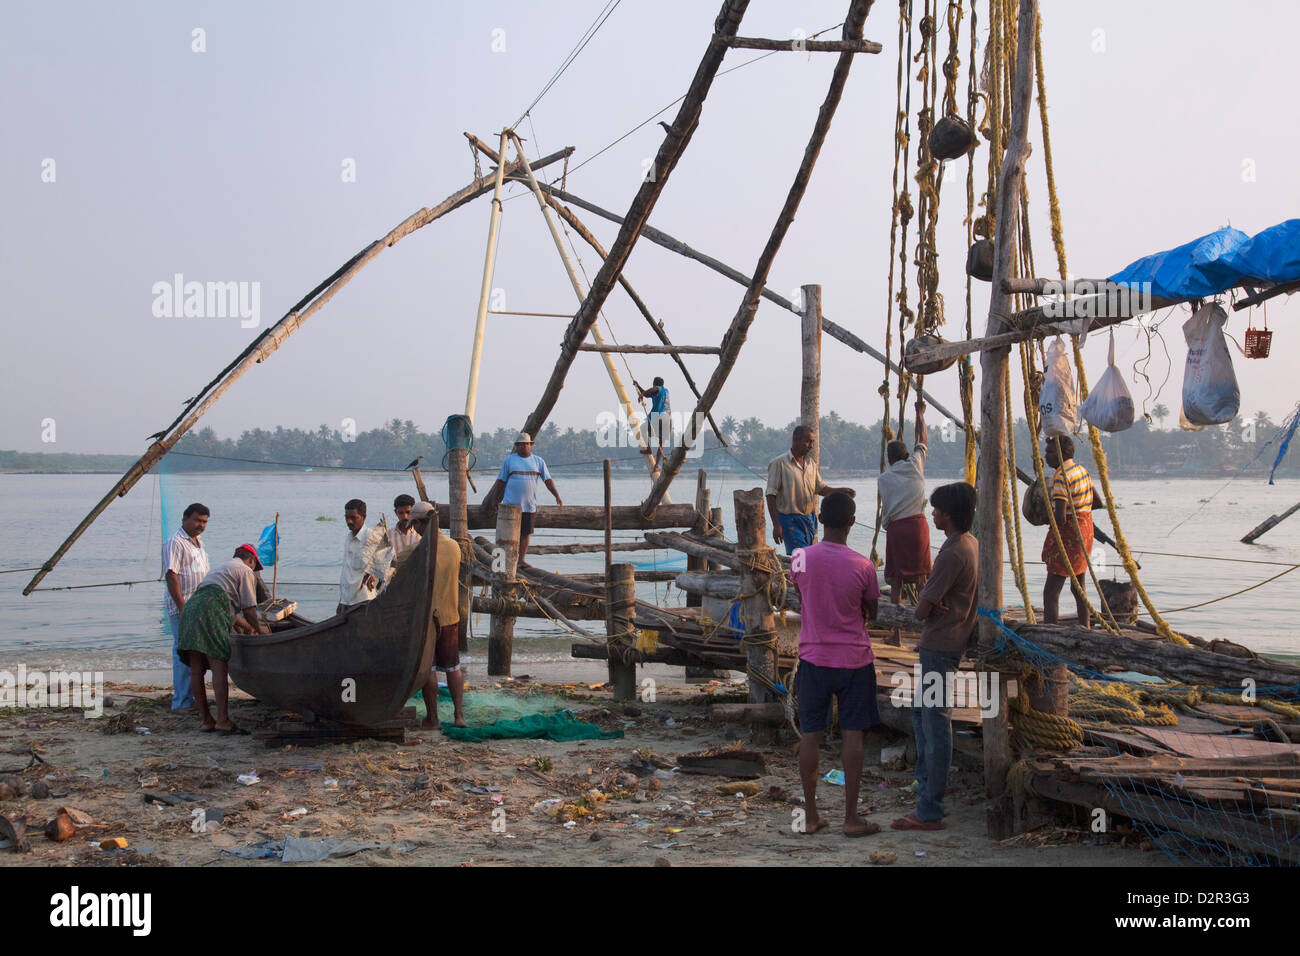 Fishermen preparing traditional boat and Chinese fishing net on the waterfront at Kochi (Cochin), Kerala, India, - Stock Image